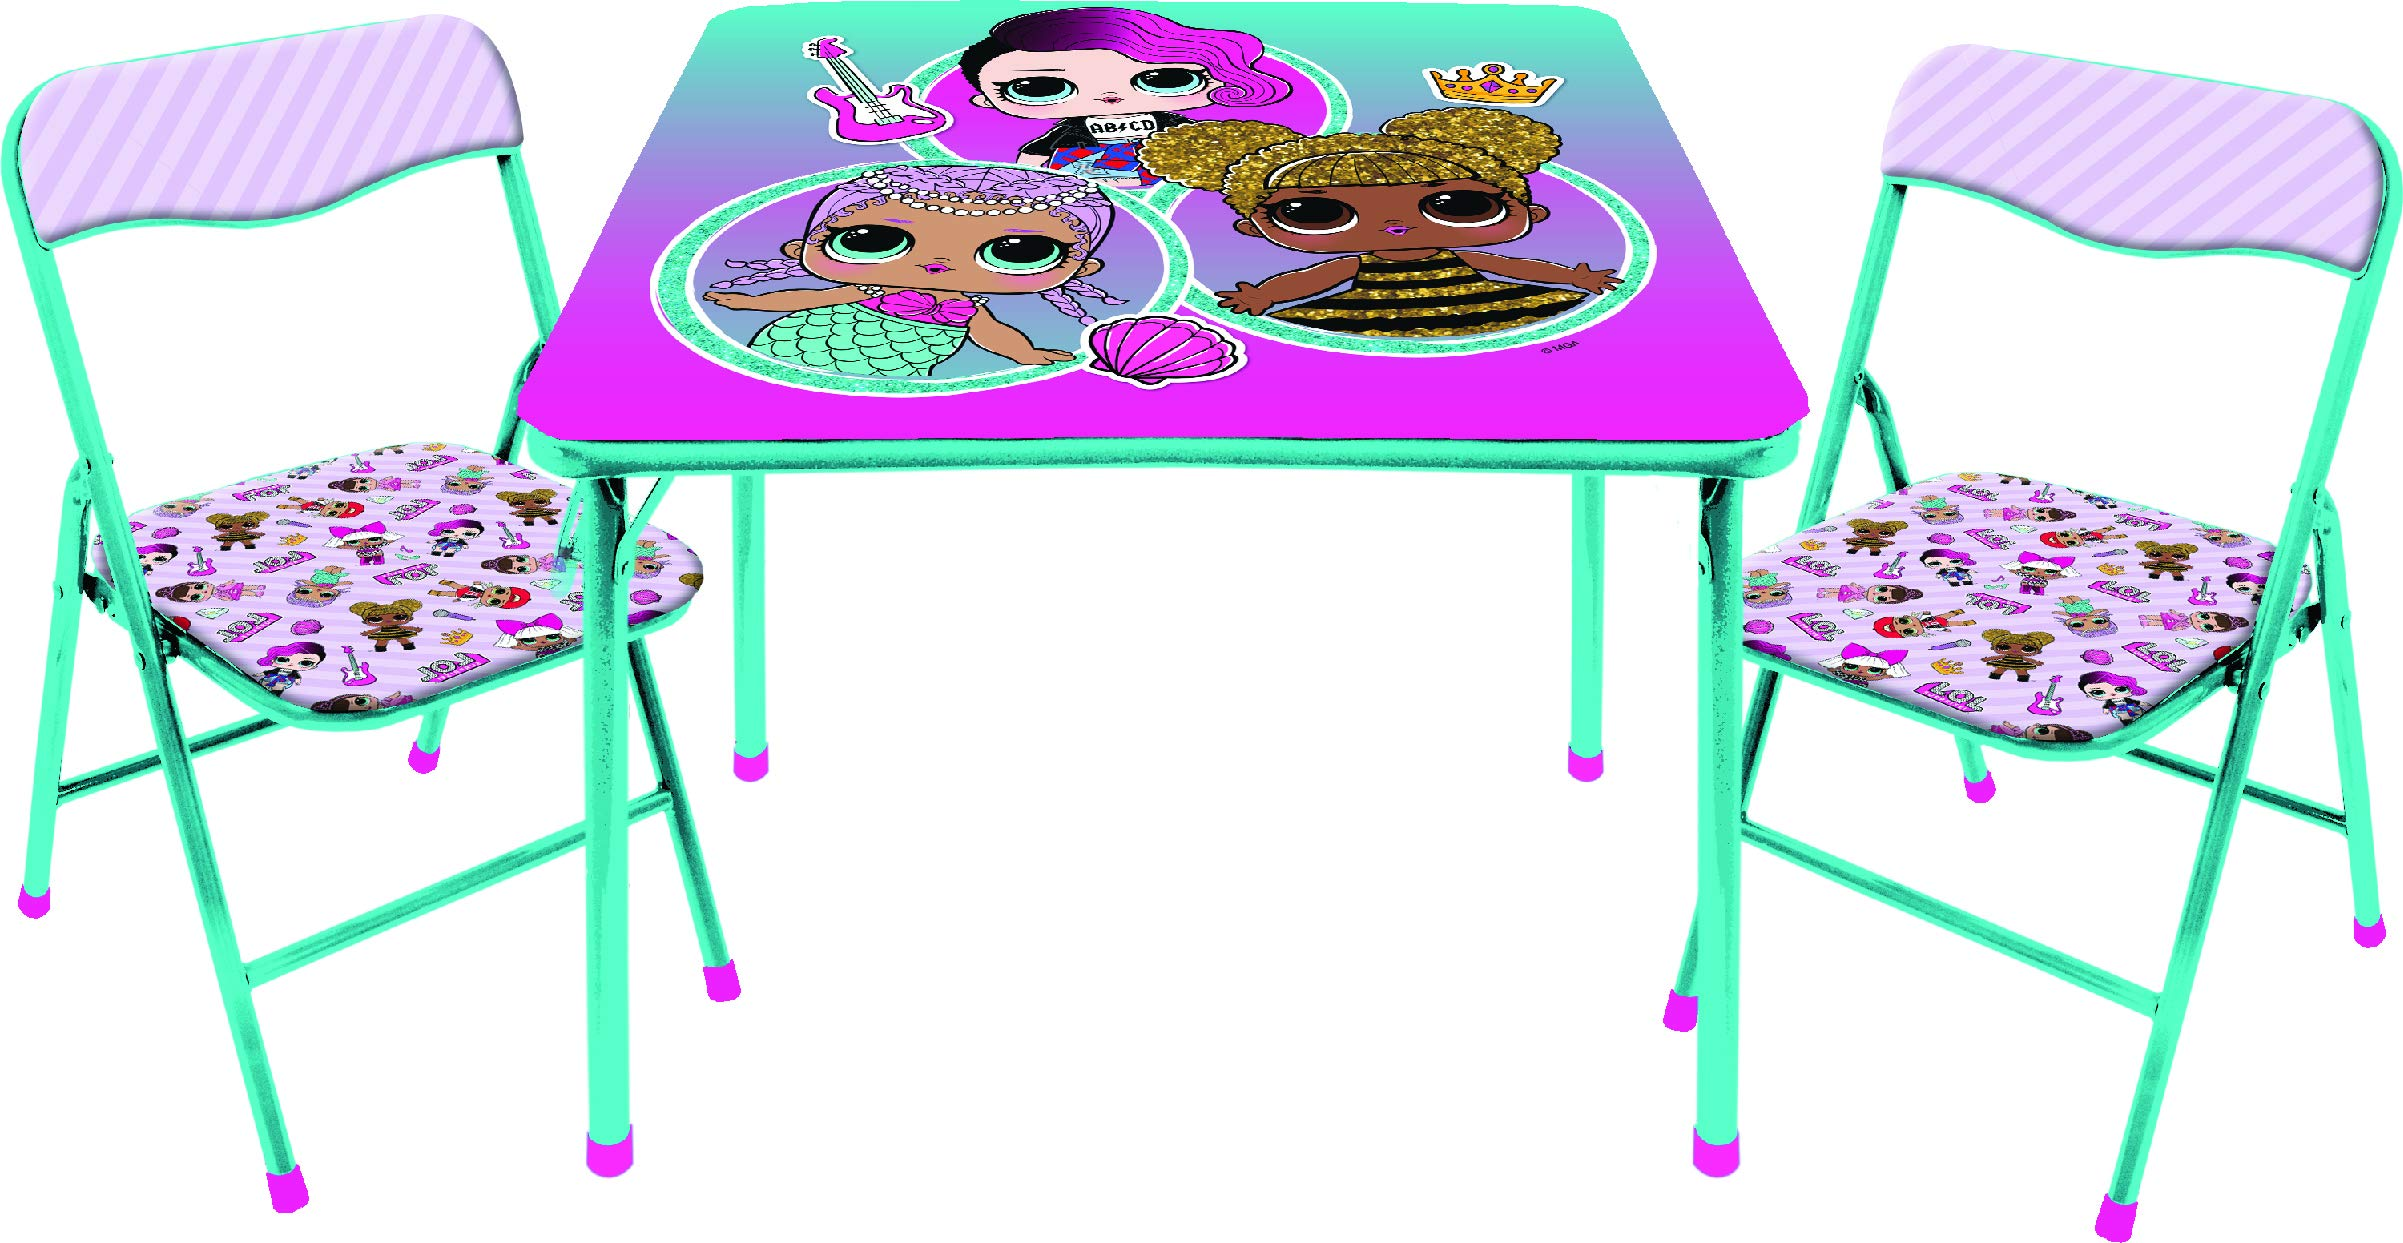 LOL Surprise 3 Pc Table & Chair Set, Multicolor by L.O.L. Surprise!